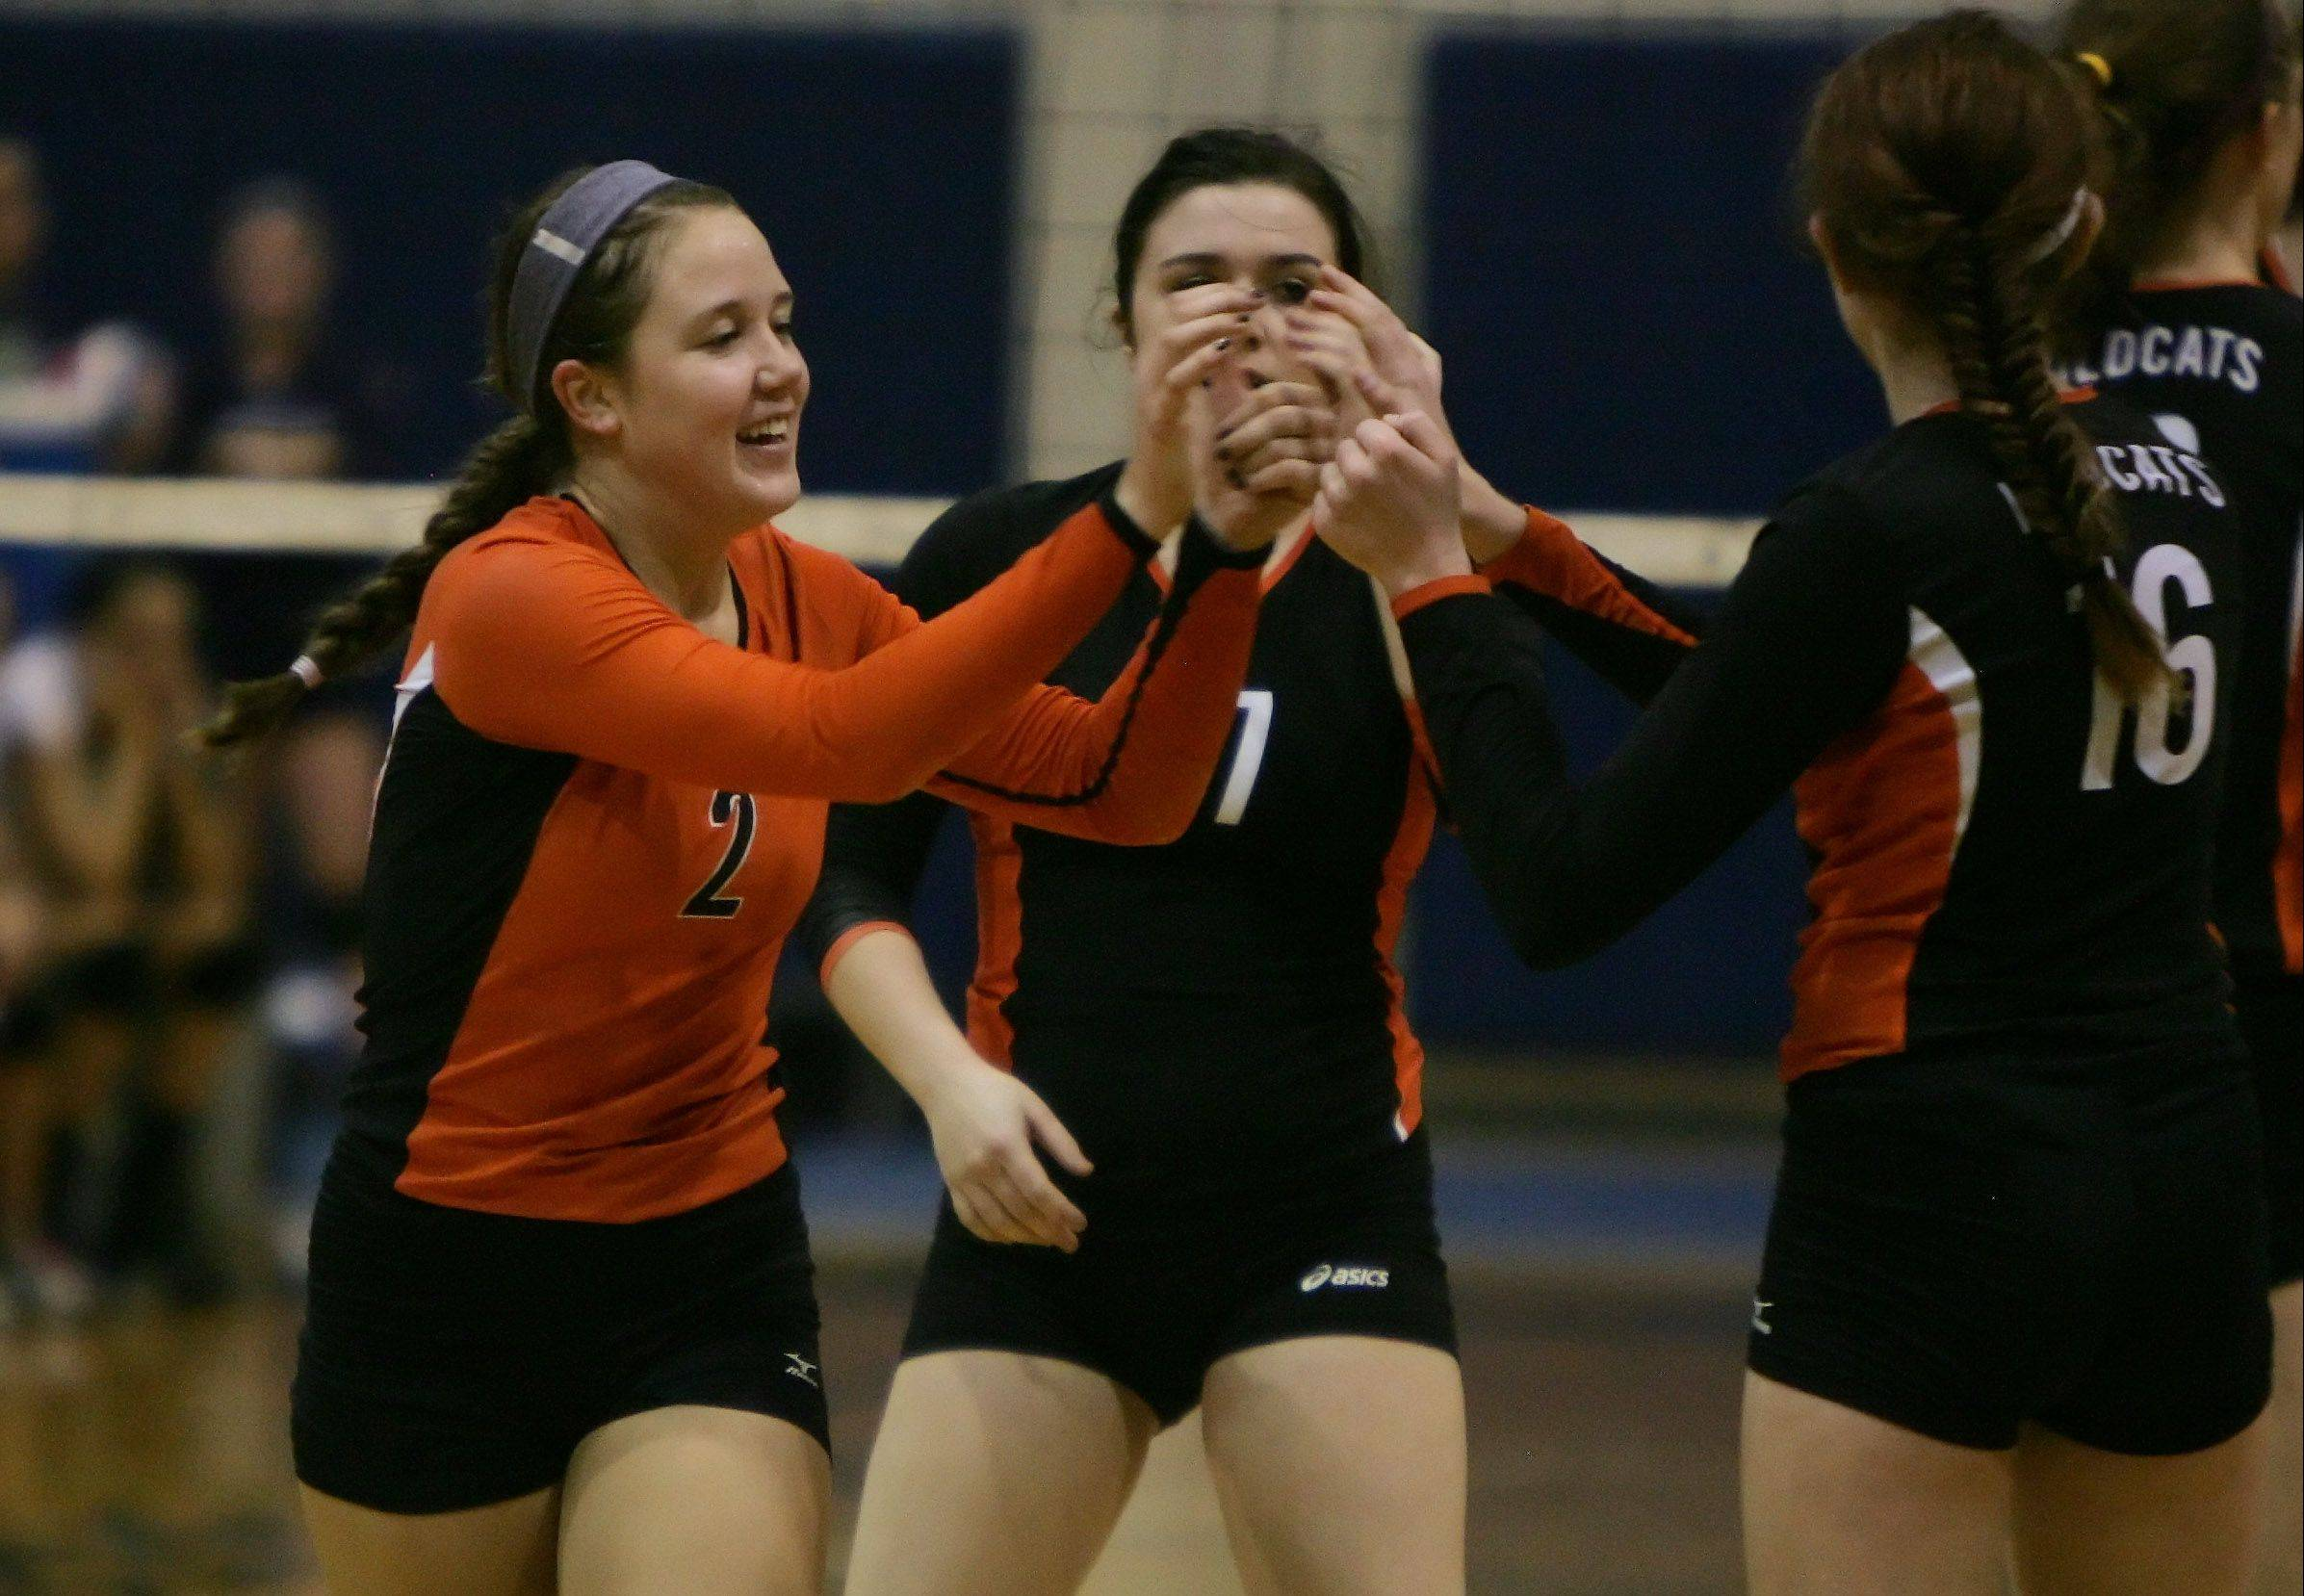 Libertyville�s Kristen Webb is congratulated by teammates after winning a point on her serve during regional semifinal play Tuesday between the Wildcats and Mundelein at Lake Zurich.